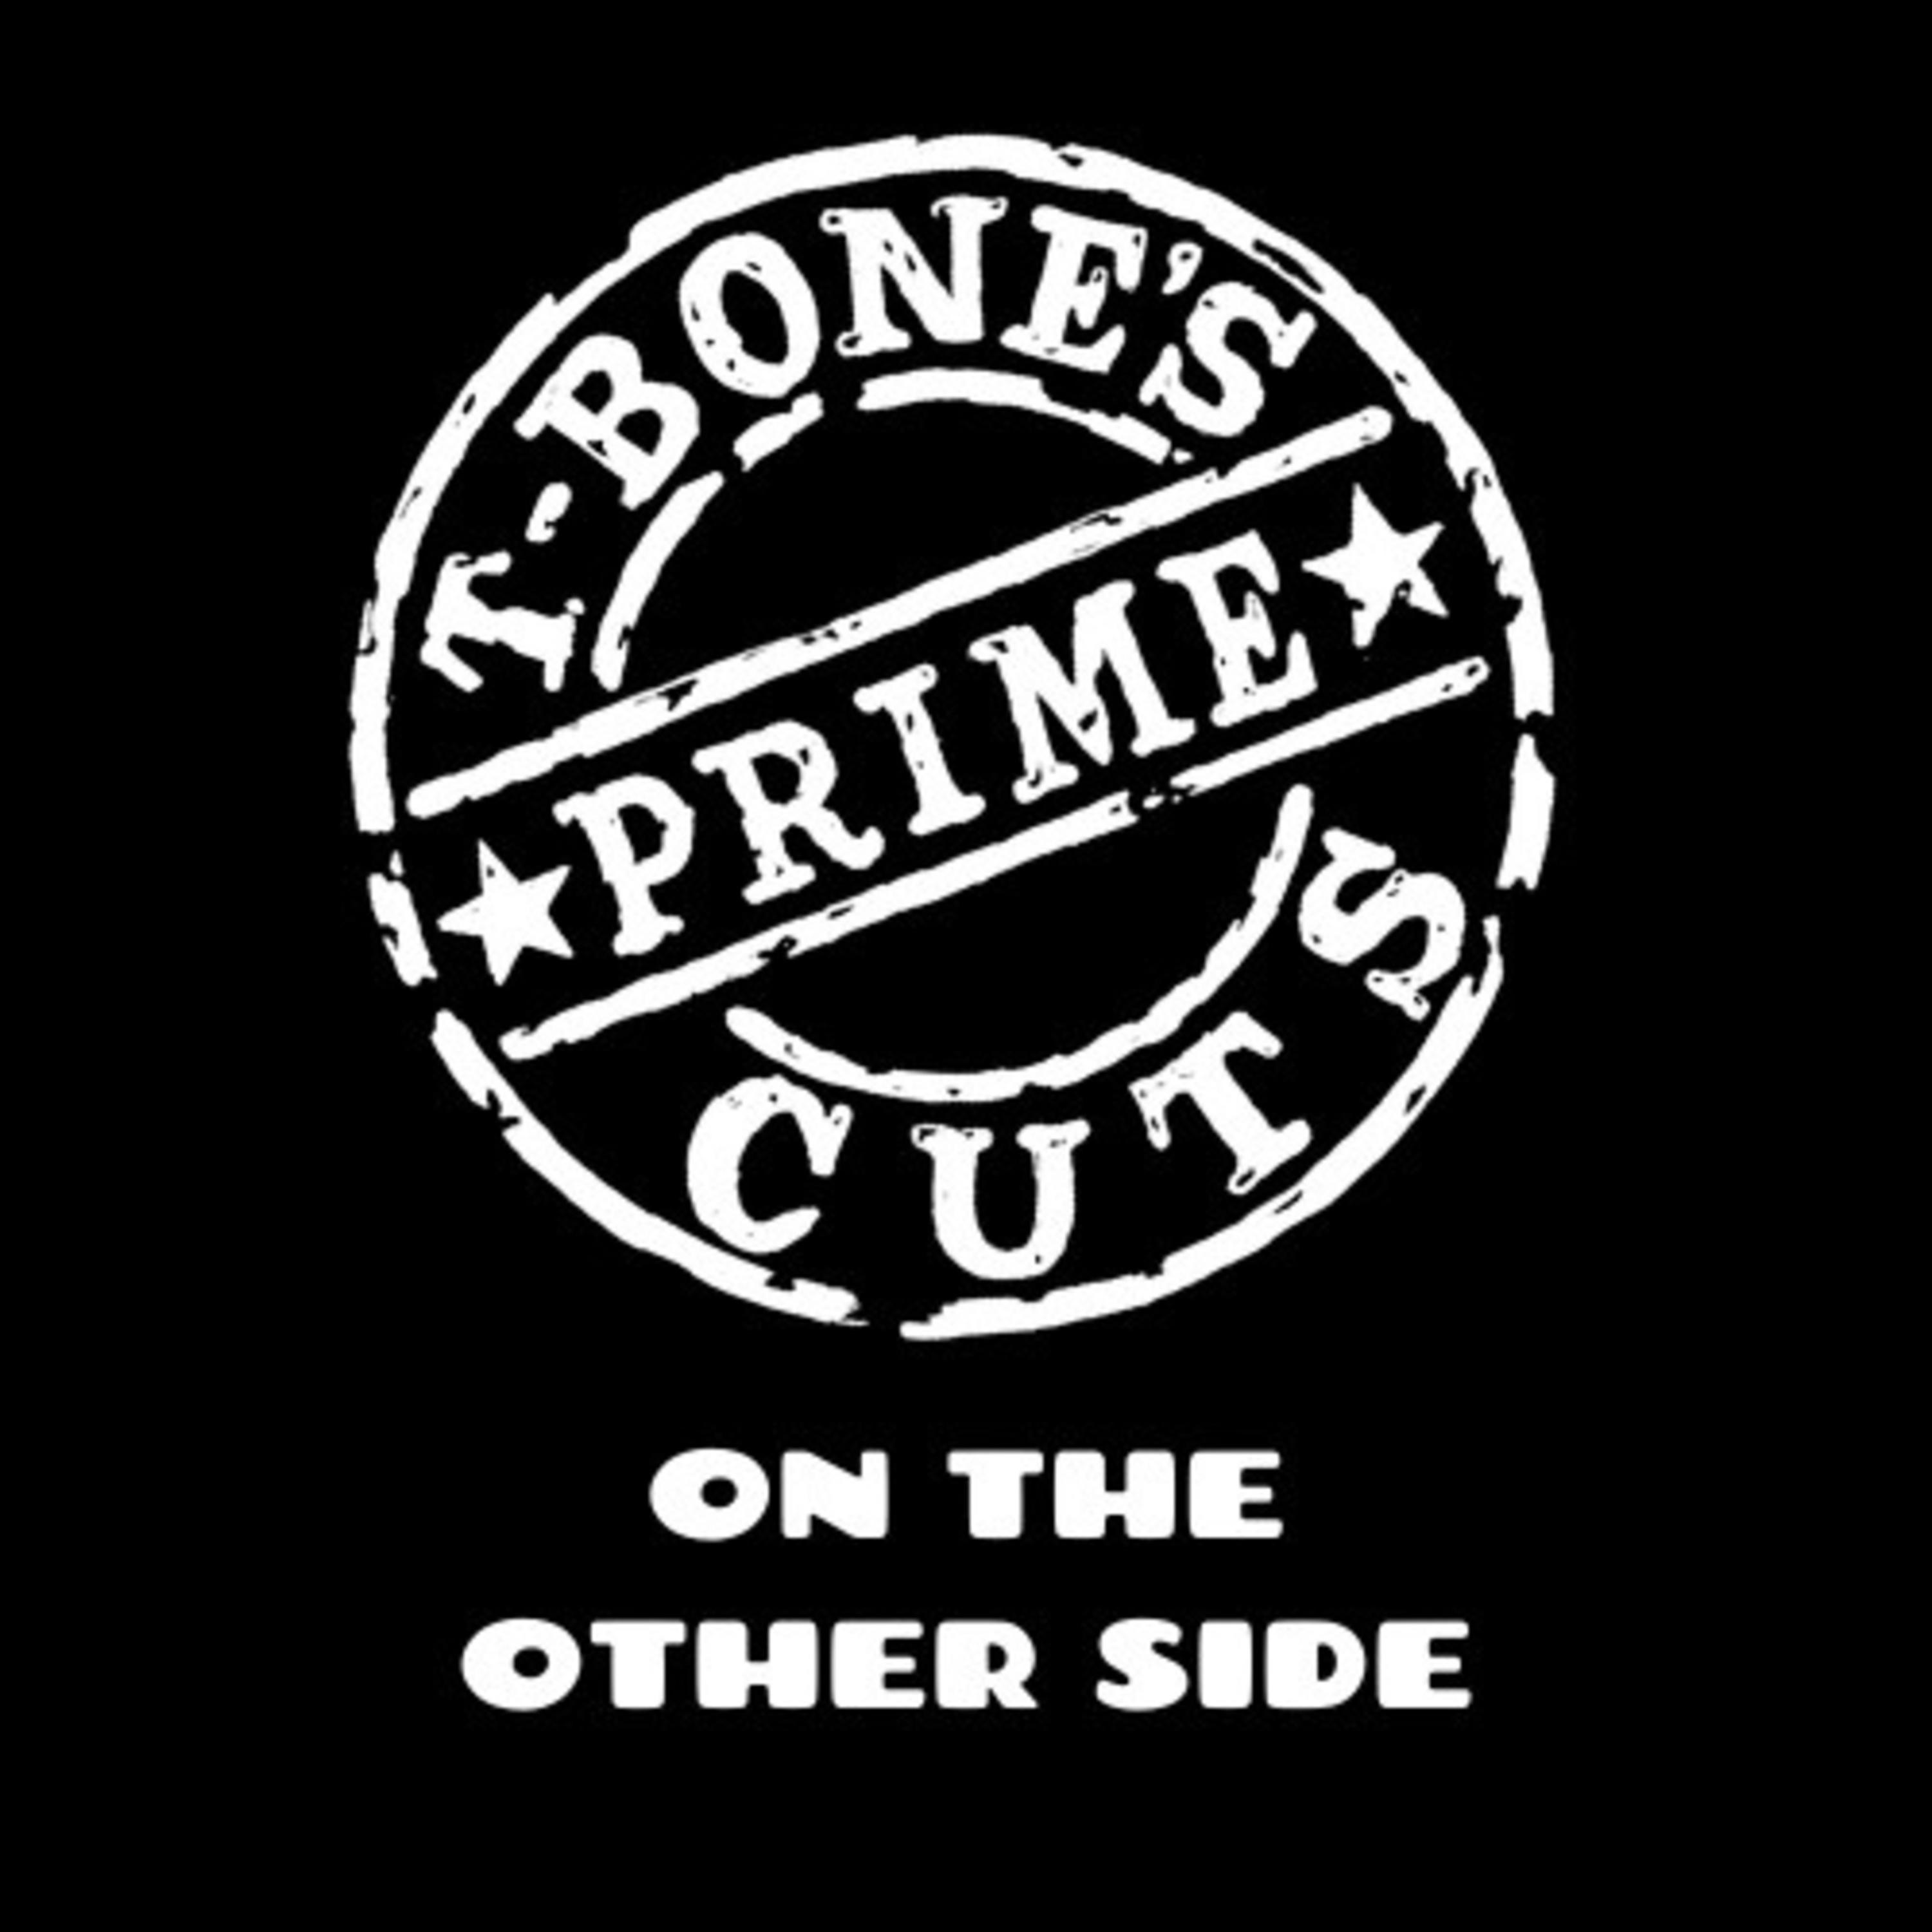 T-Bone's Prime Cuts...On The Other Side